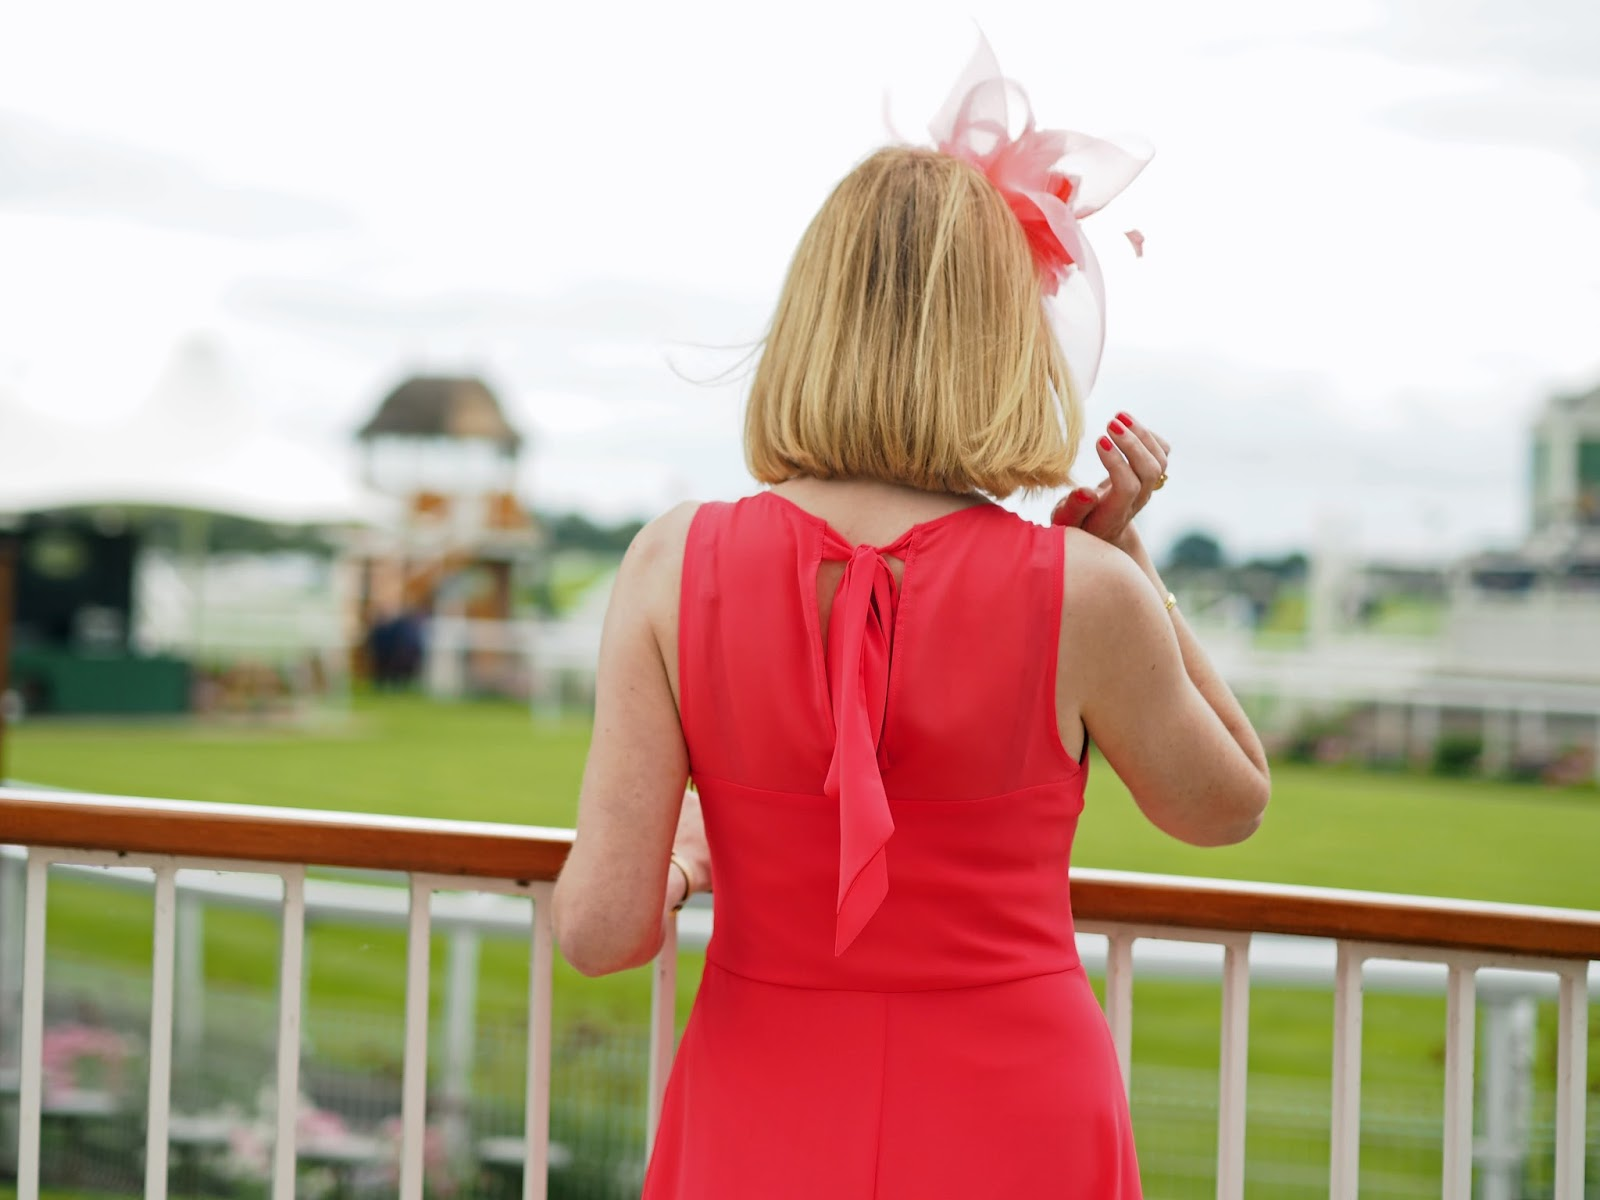 York races outfit